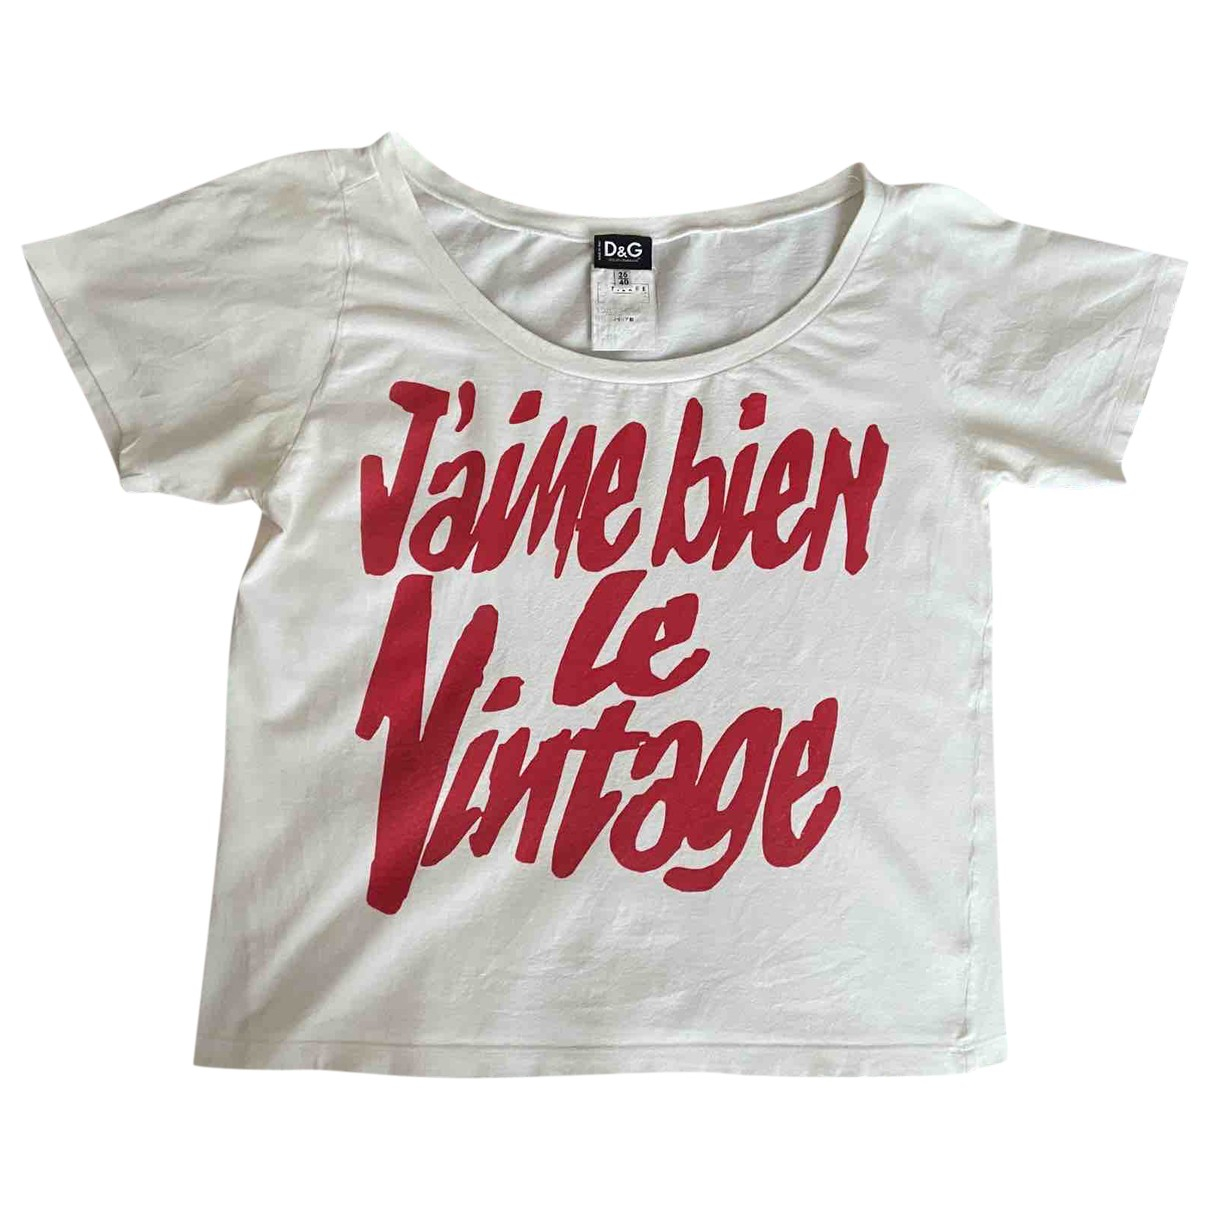 D&g \N White Cotton  top for Women 40 IT